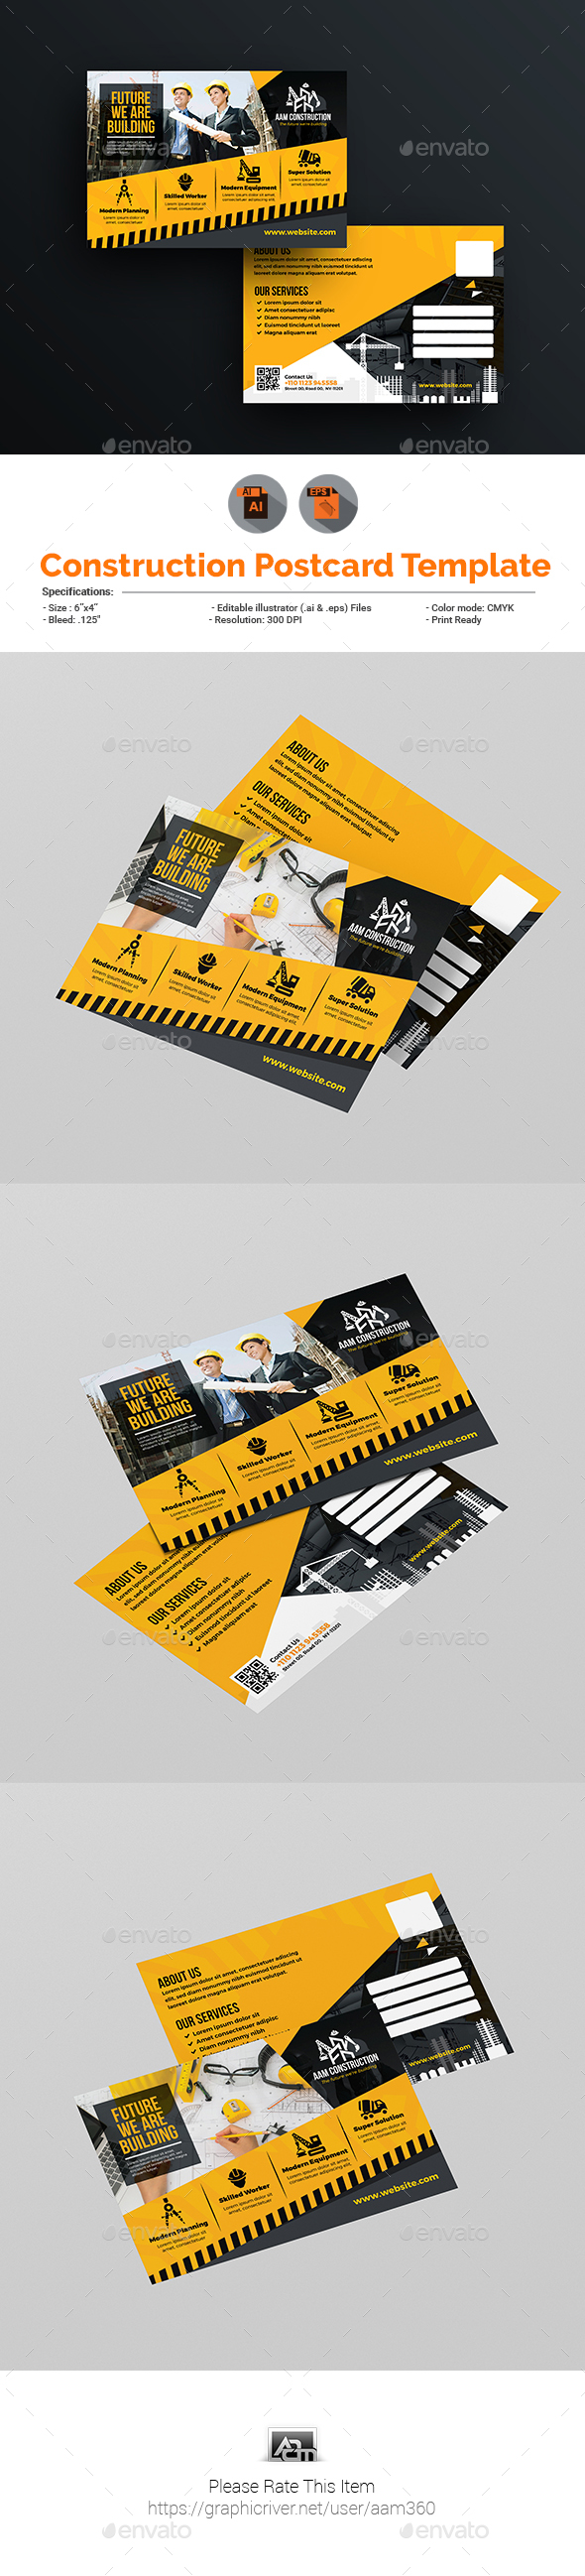 Construction Postcard Template - Cards & Invites Print Templates